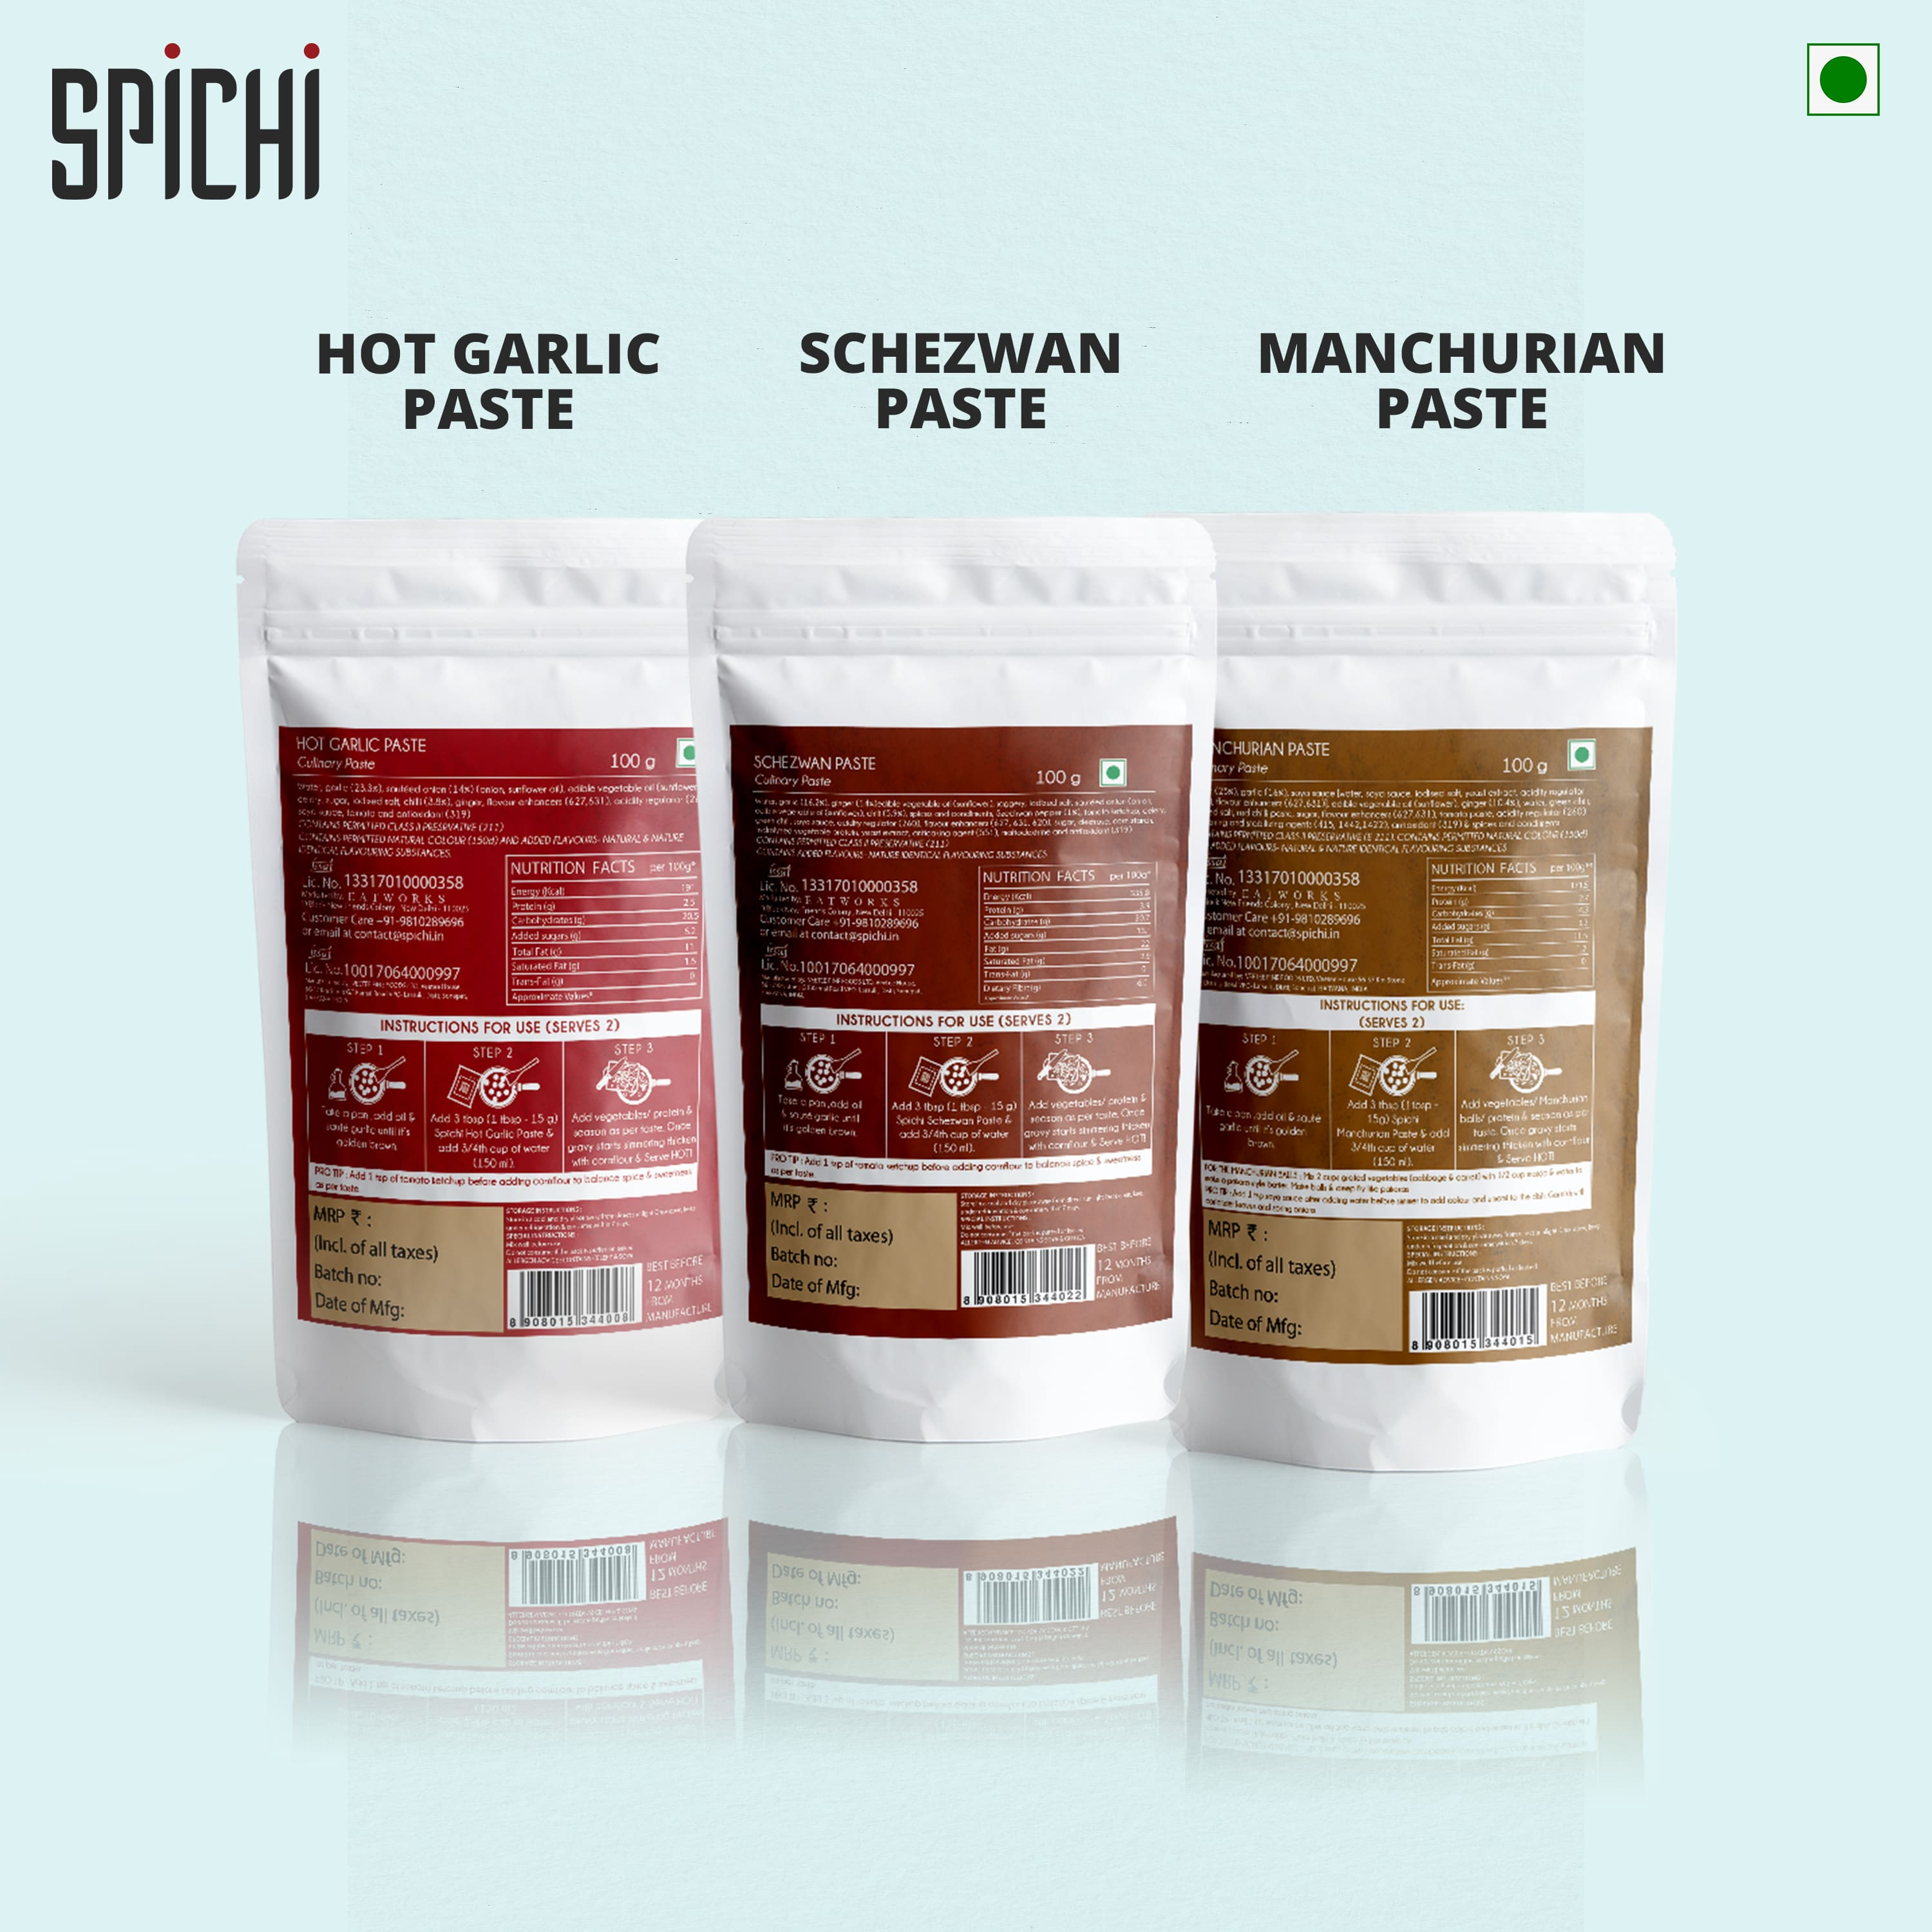 TRI-PACK - HOT GARLIC PASTE, SCHEZWAN PASTE AND MANCHURIAN PASTE